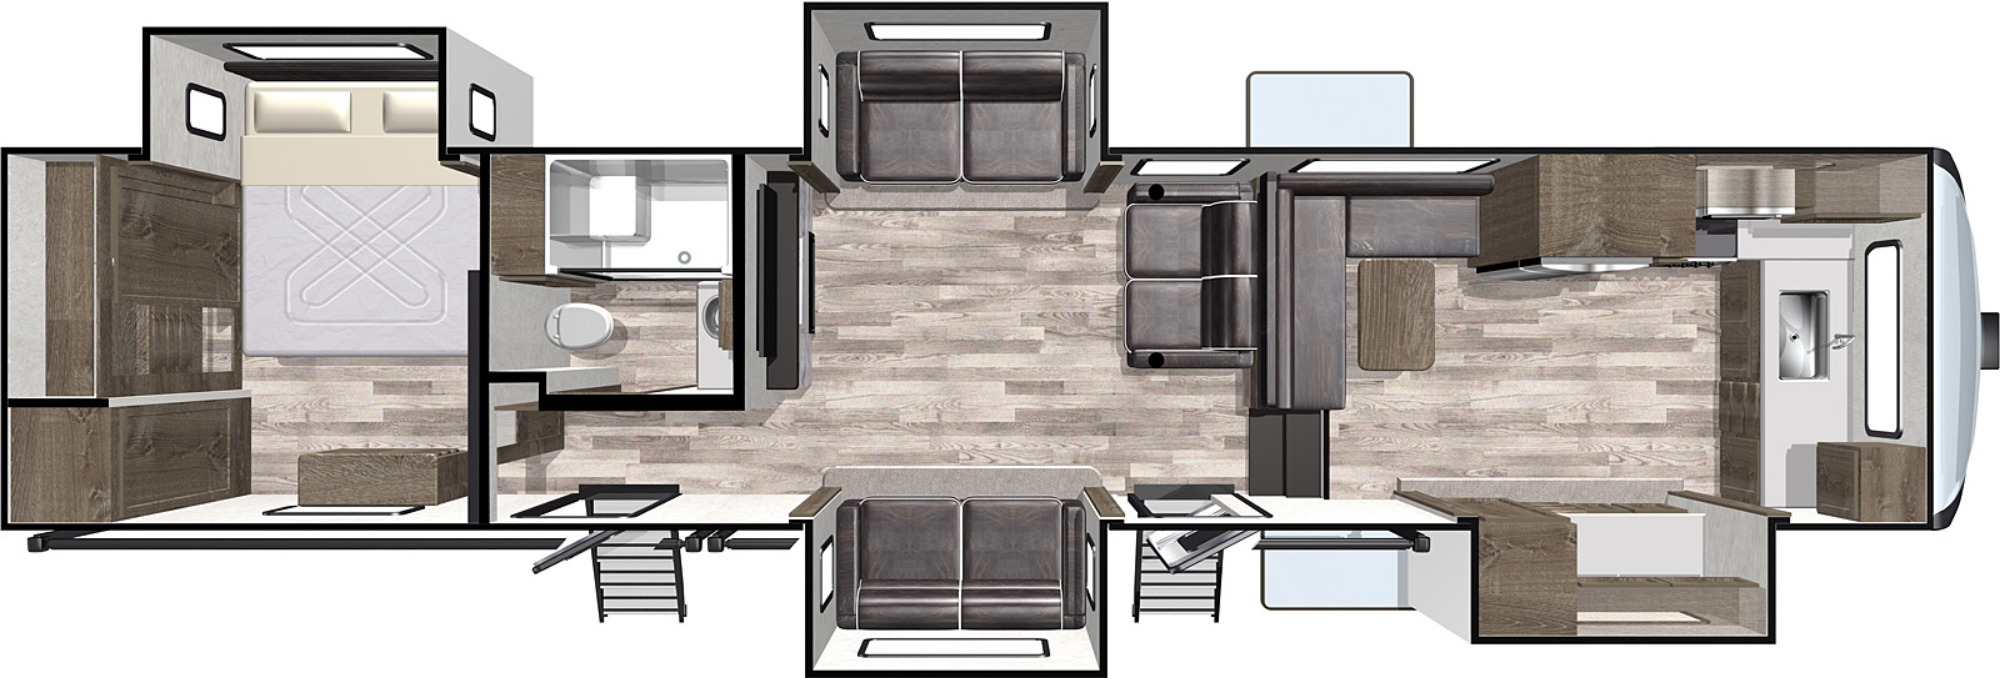 View Floor Plan for 2021 FOREST RIVER CARDINAL LIMITED 402FKLE